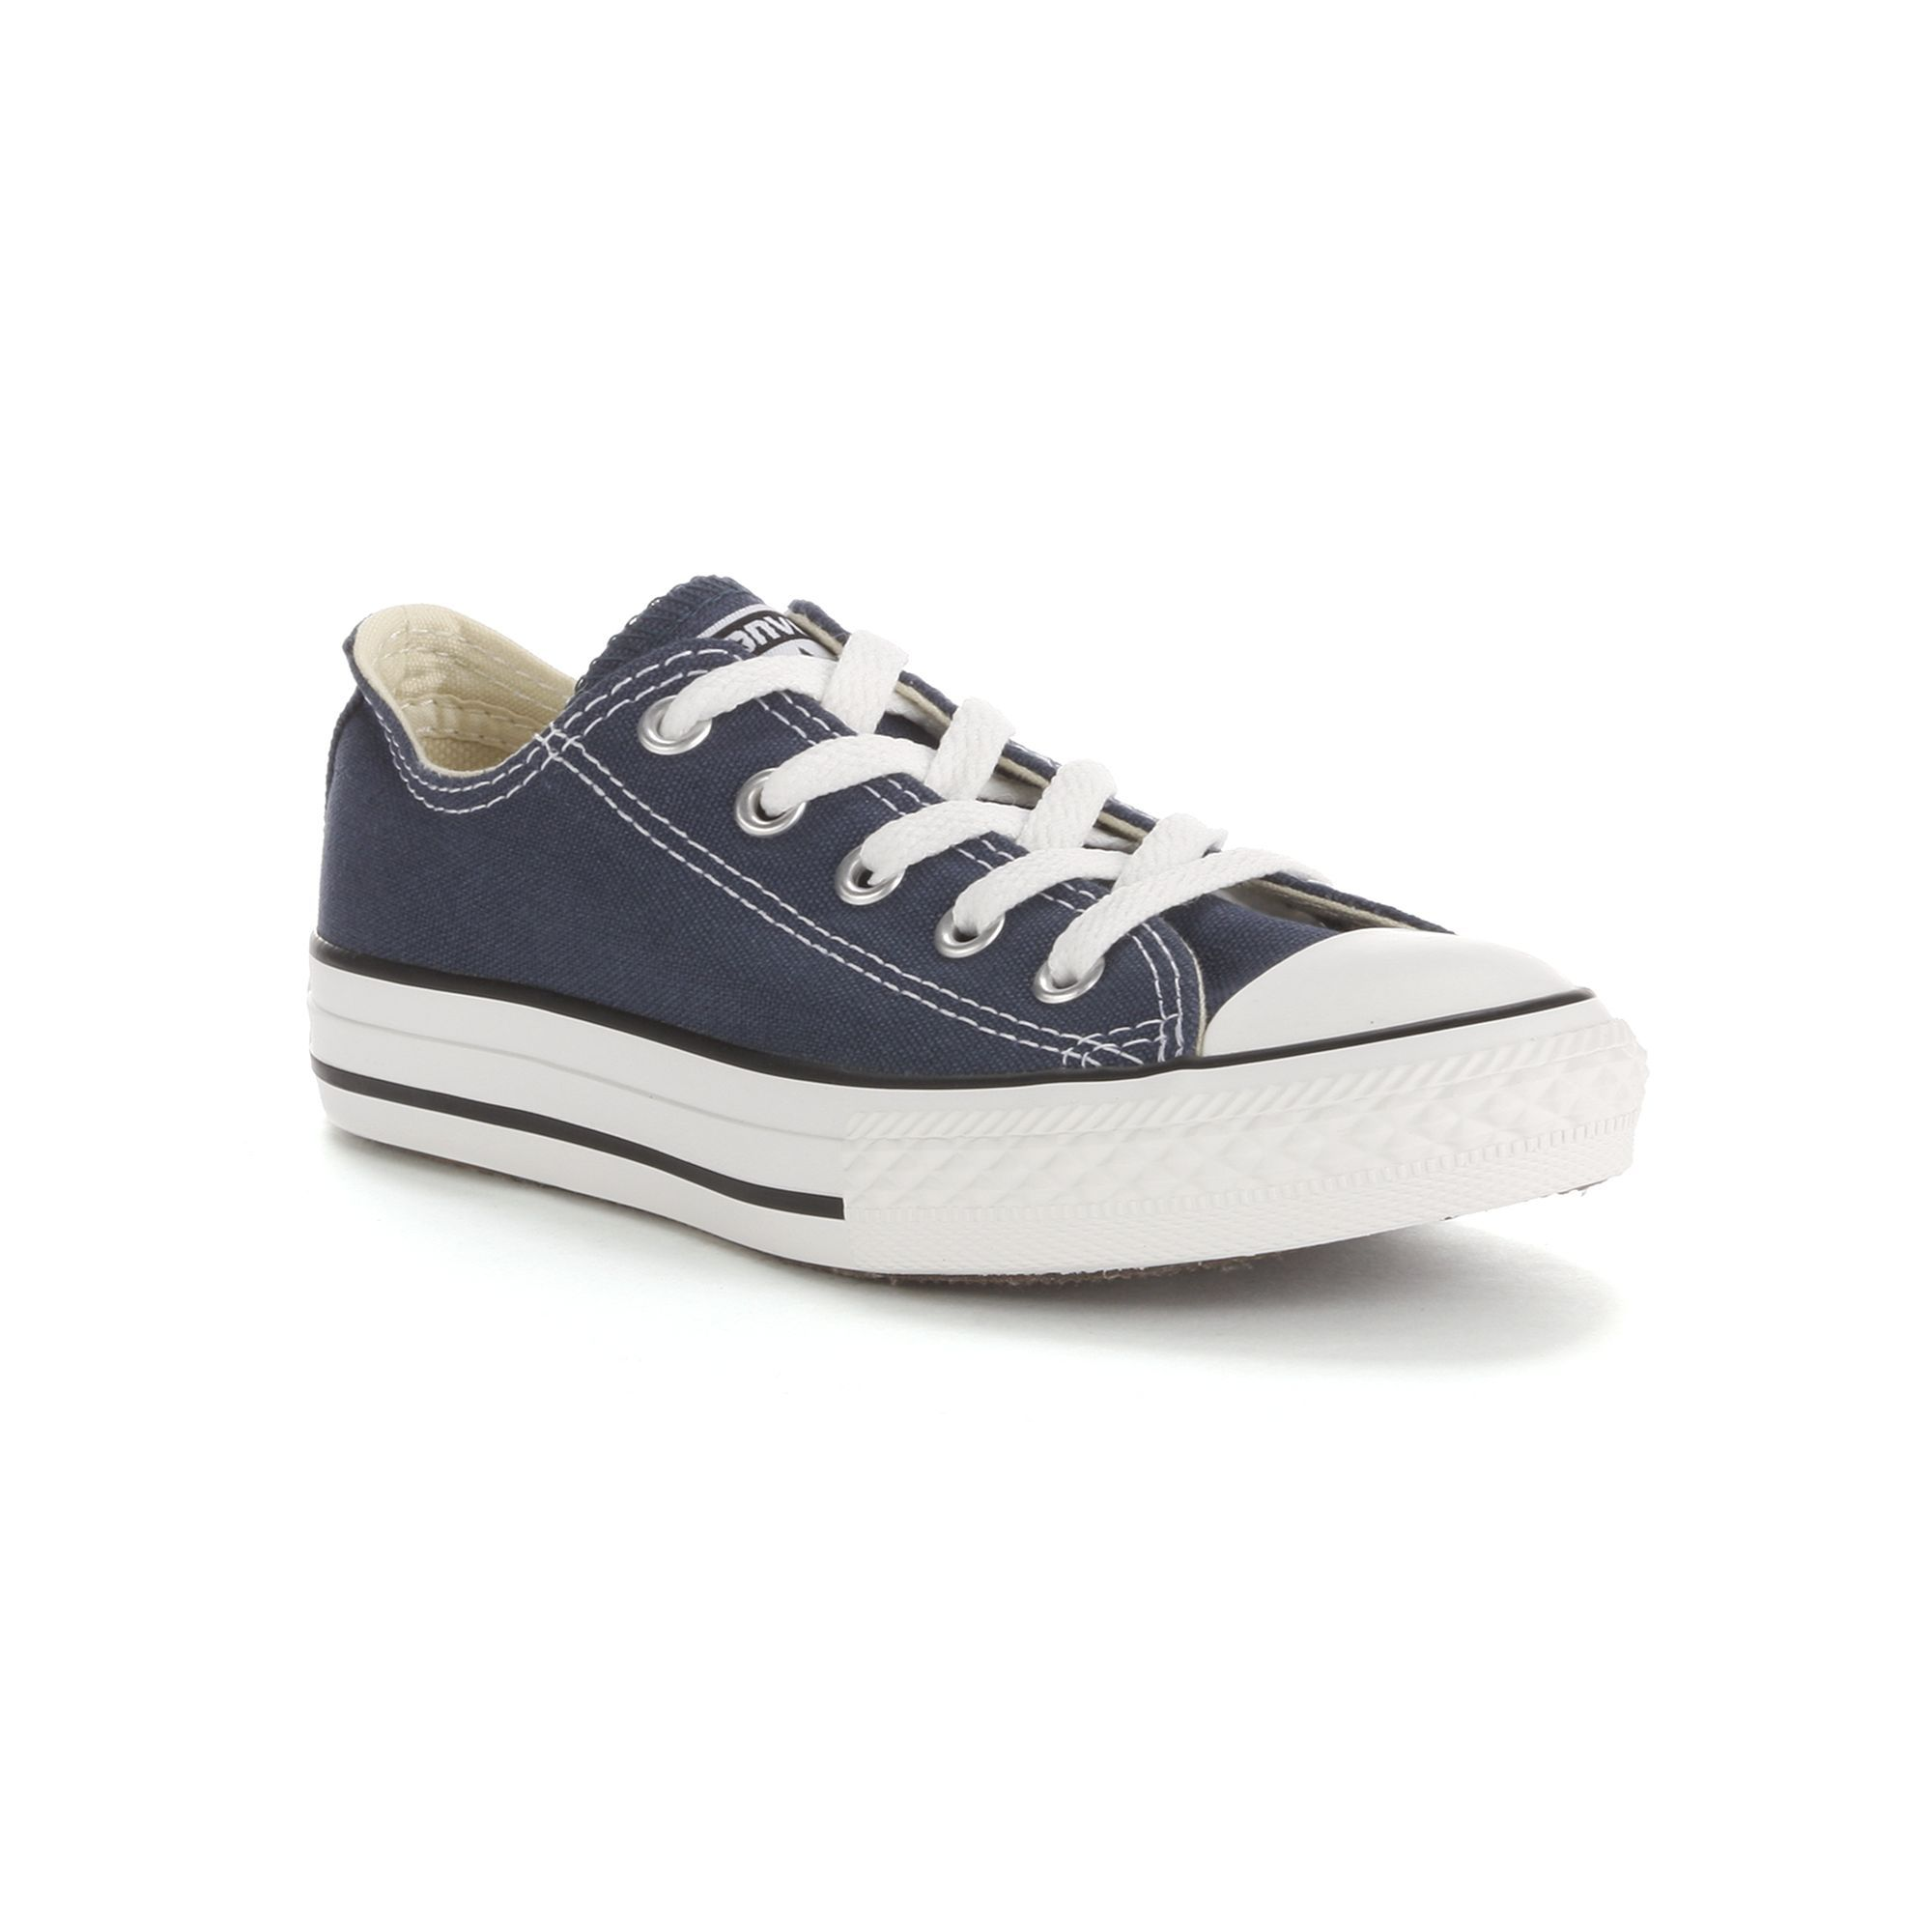 edf8054a01ab Kid s Converse Chuck Taylor All Star Sneakers